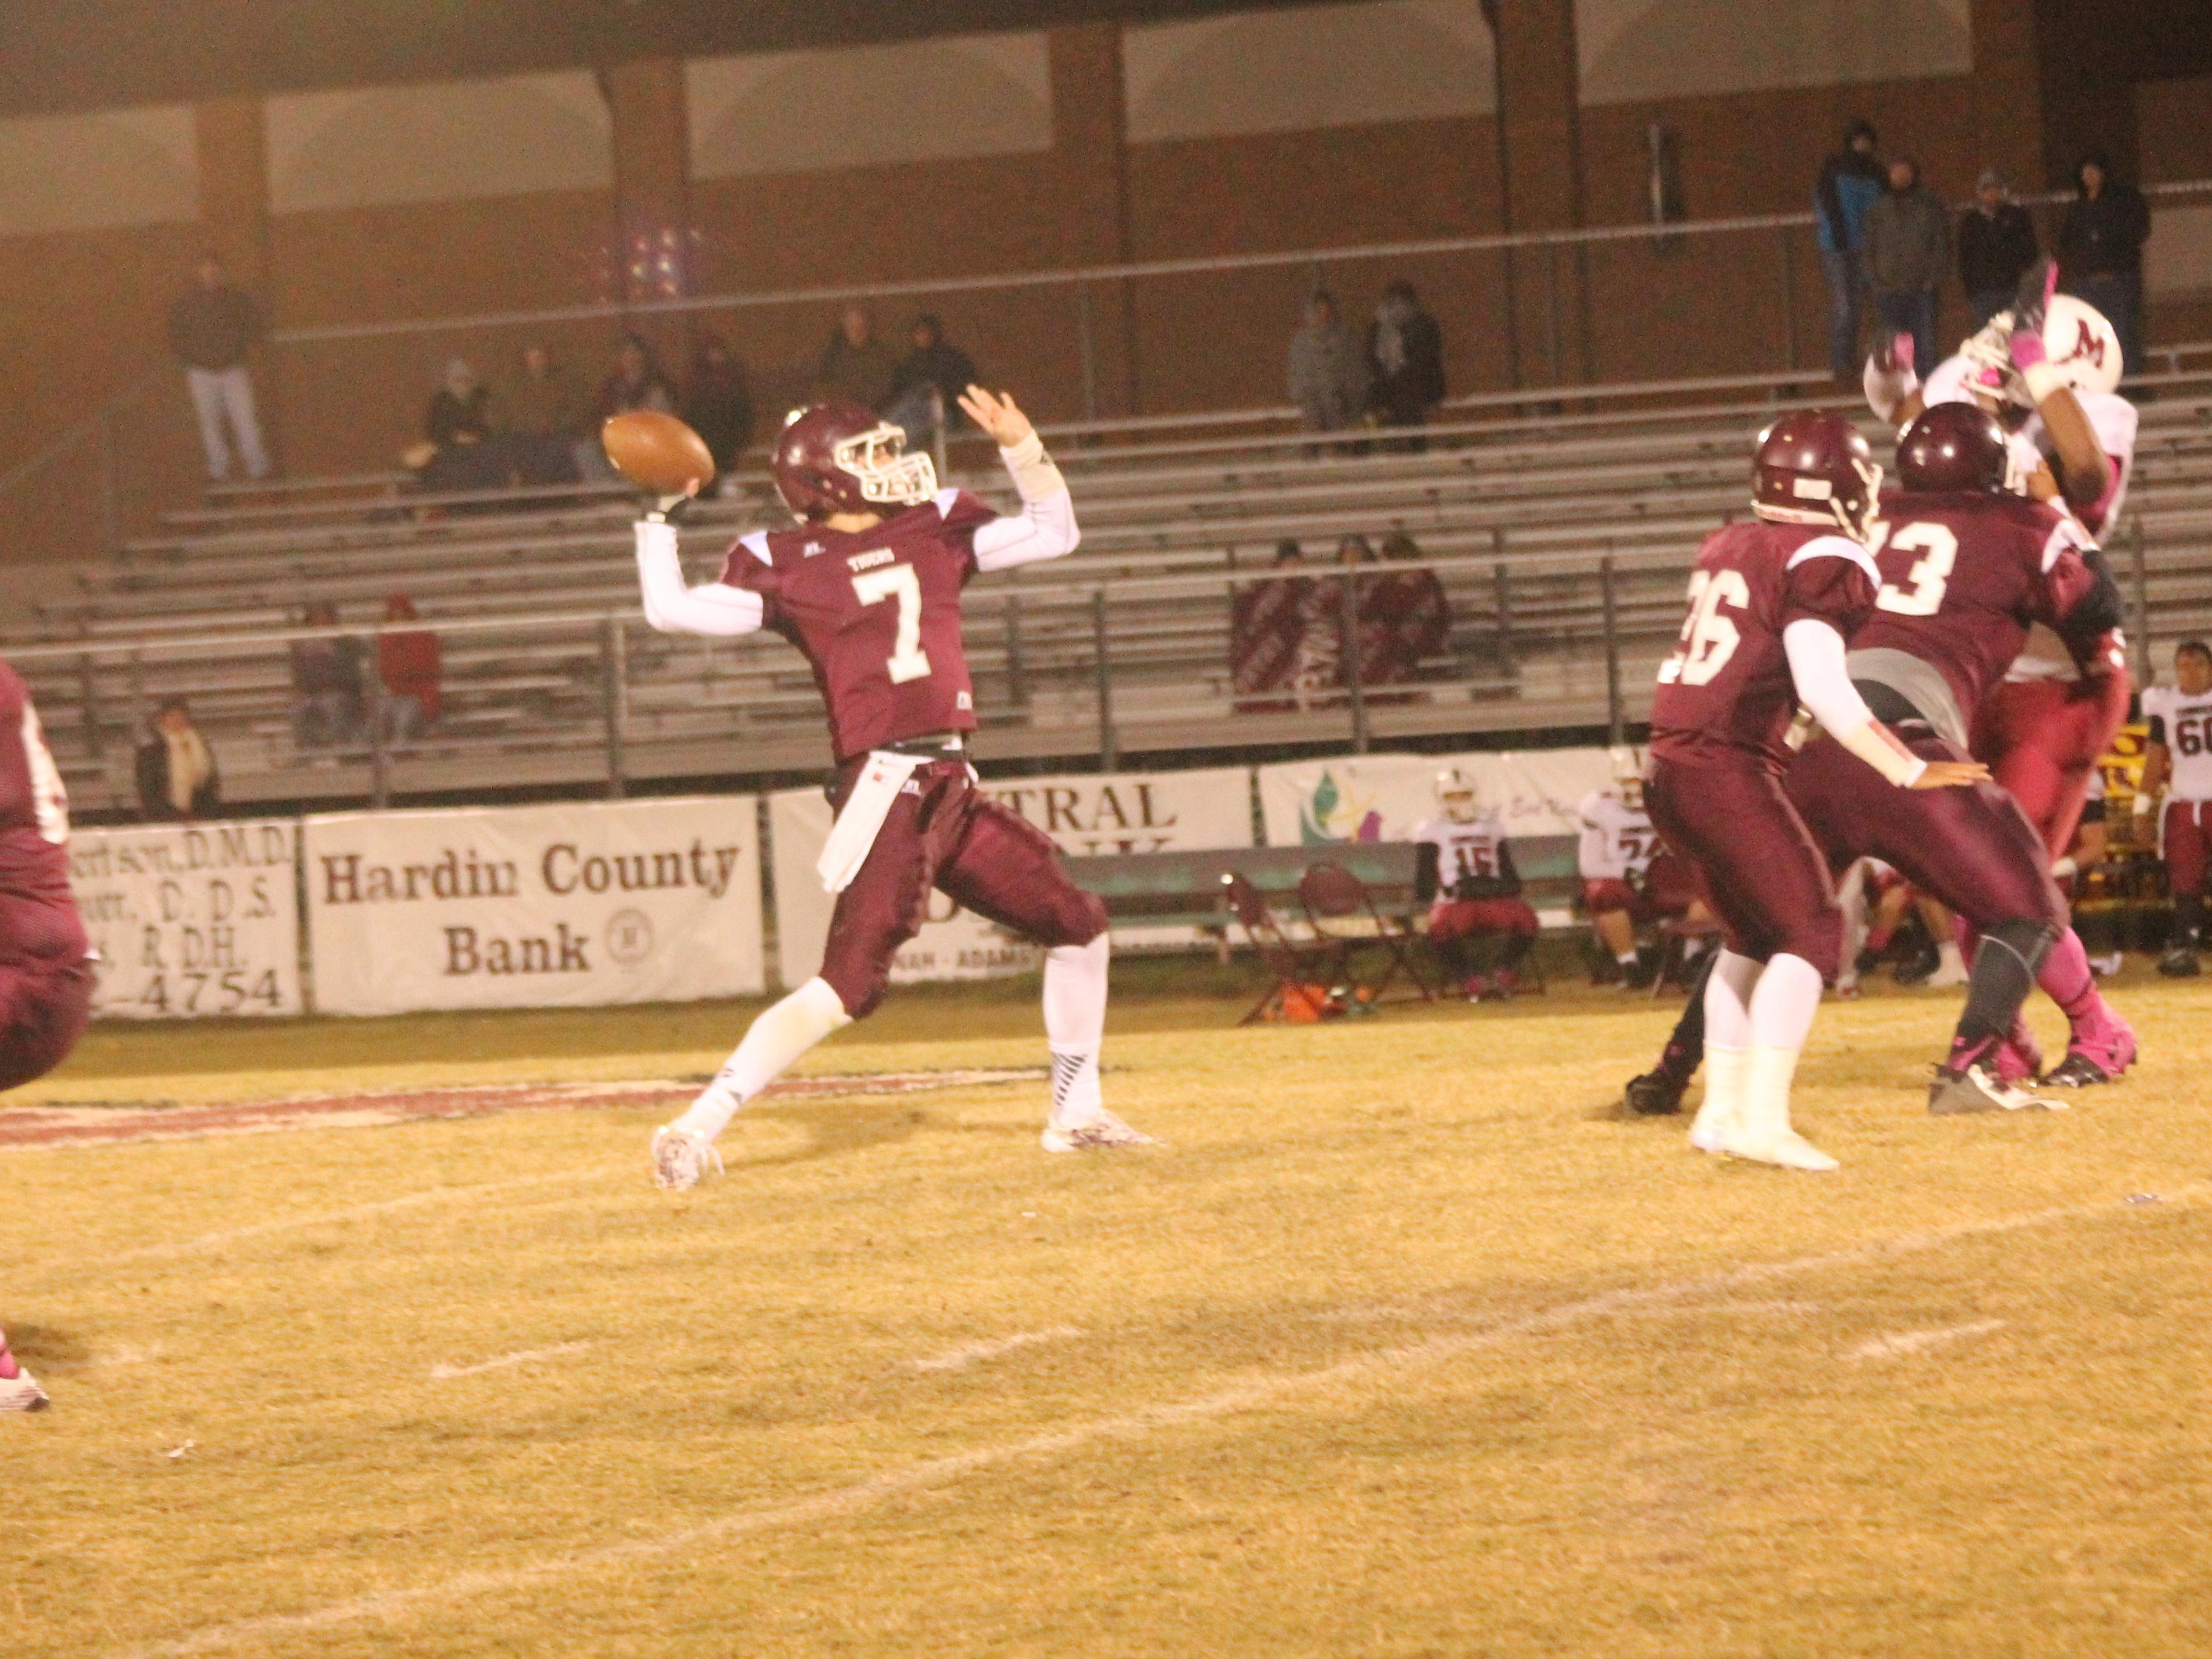 Cal Gobbell, seen here in a game last year vs. Munford, has led Hardin County to a 3-0 start in his senior season as the Tigers' quarterback.